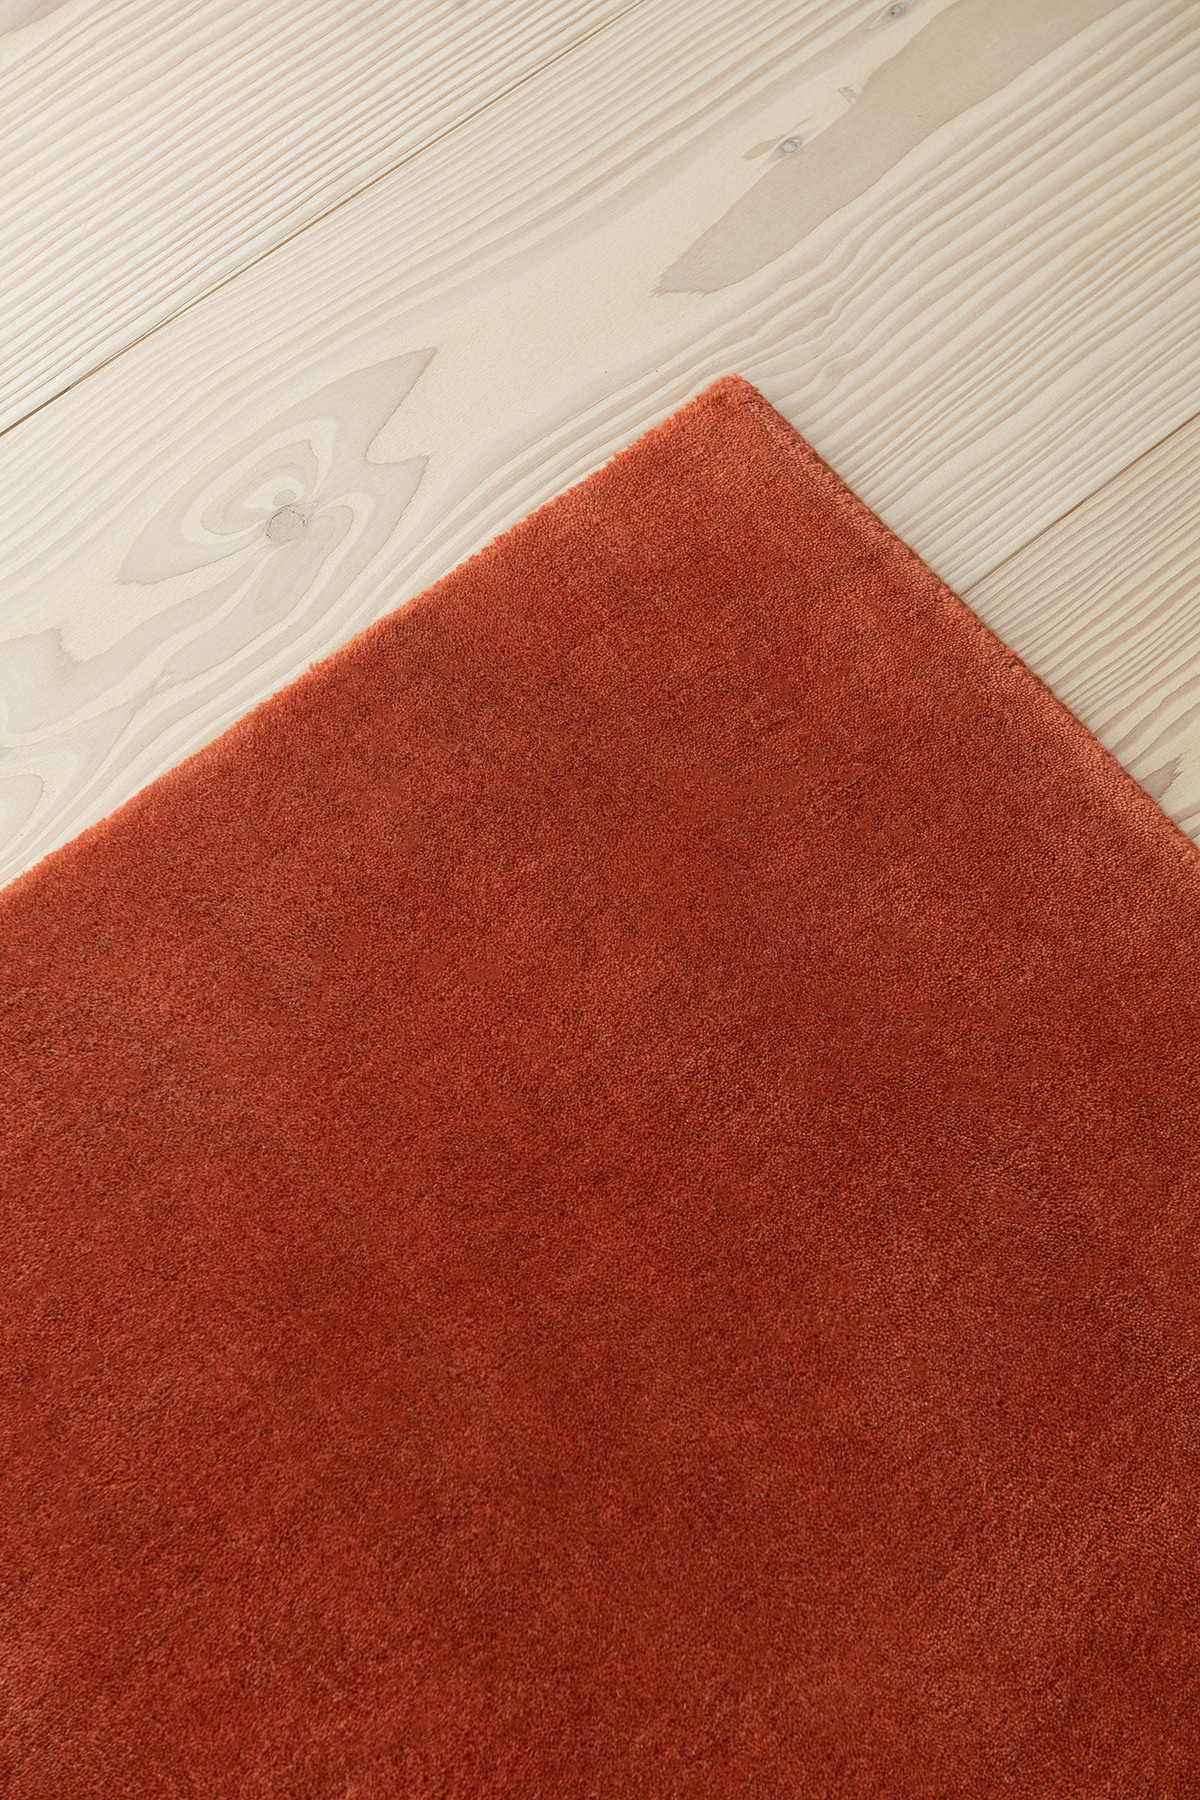 Close up of a corner on a Grand rug in Brick Red.